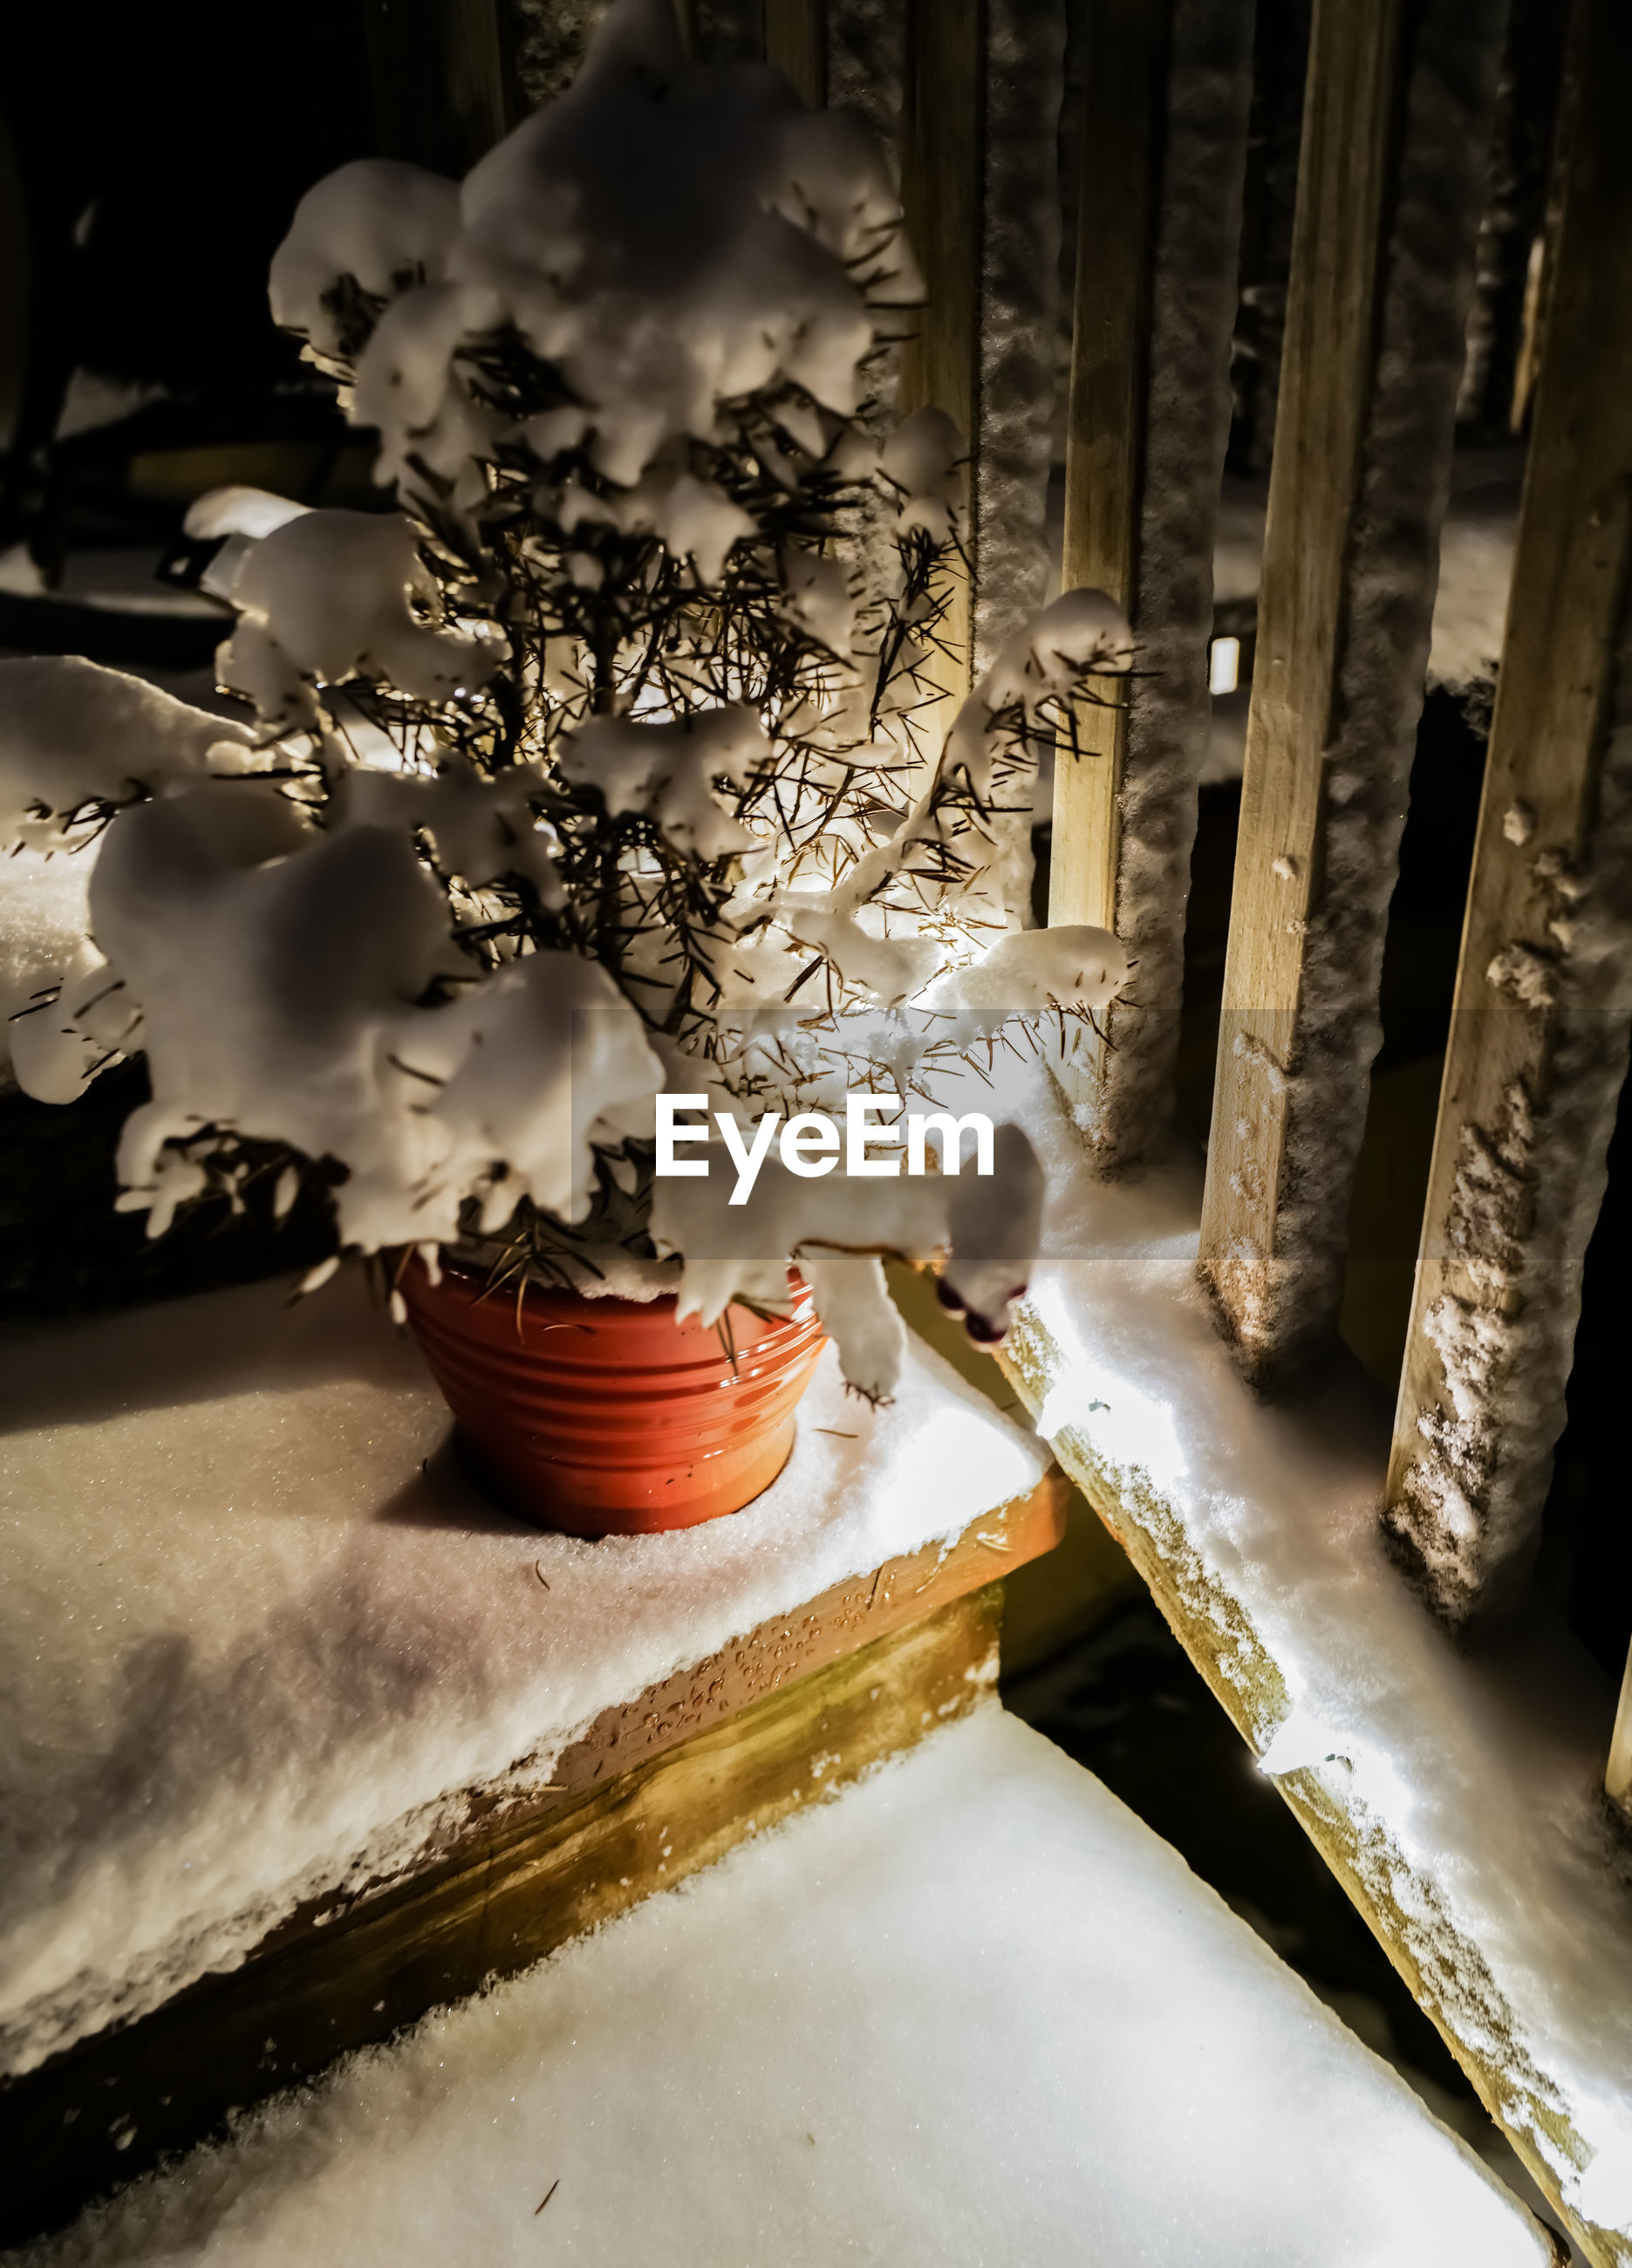 Fresh snow on plant and wooden steps with lights at night